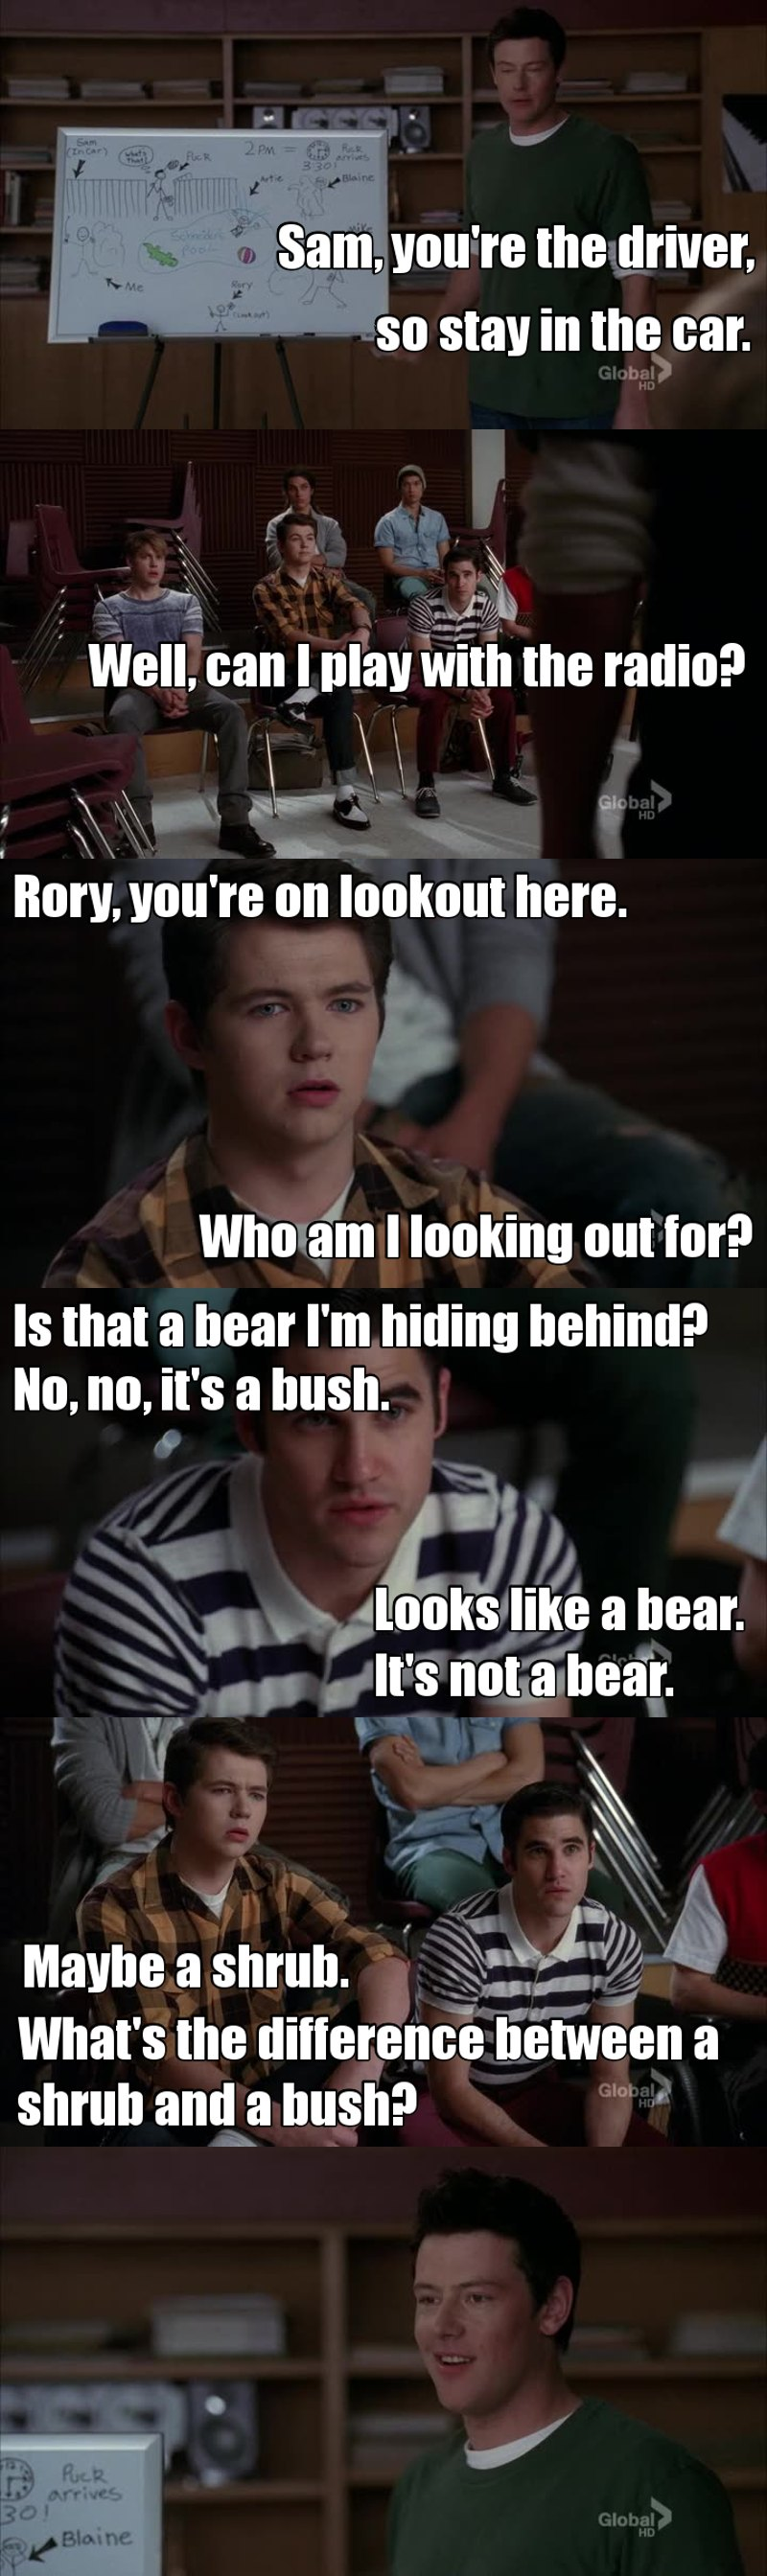 Can't stop laughing for this scene 😂😂😂 Aw Blaine, I love you 😍😍